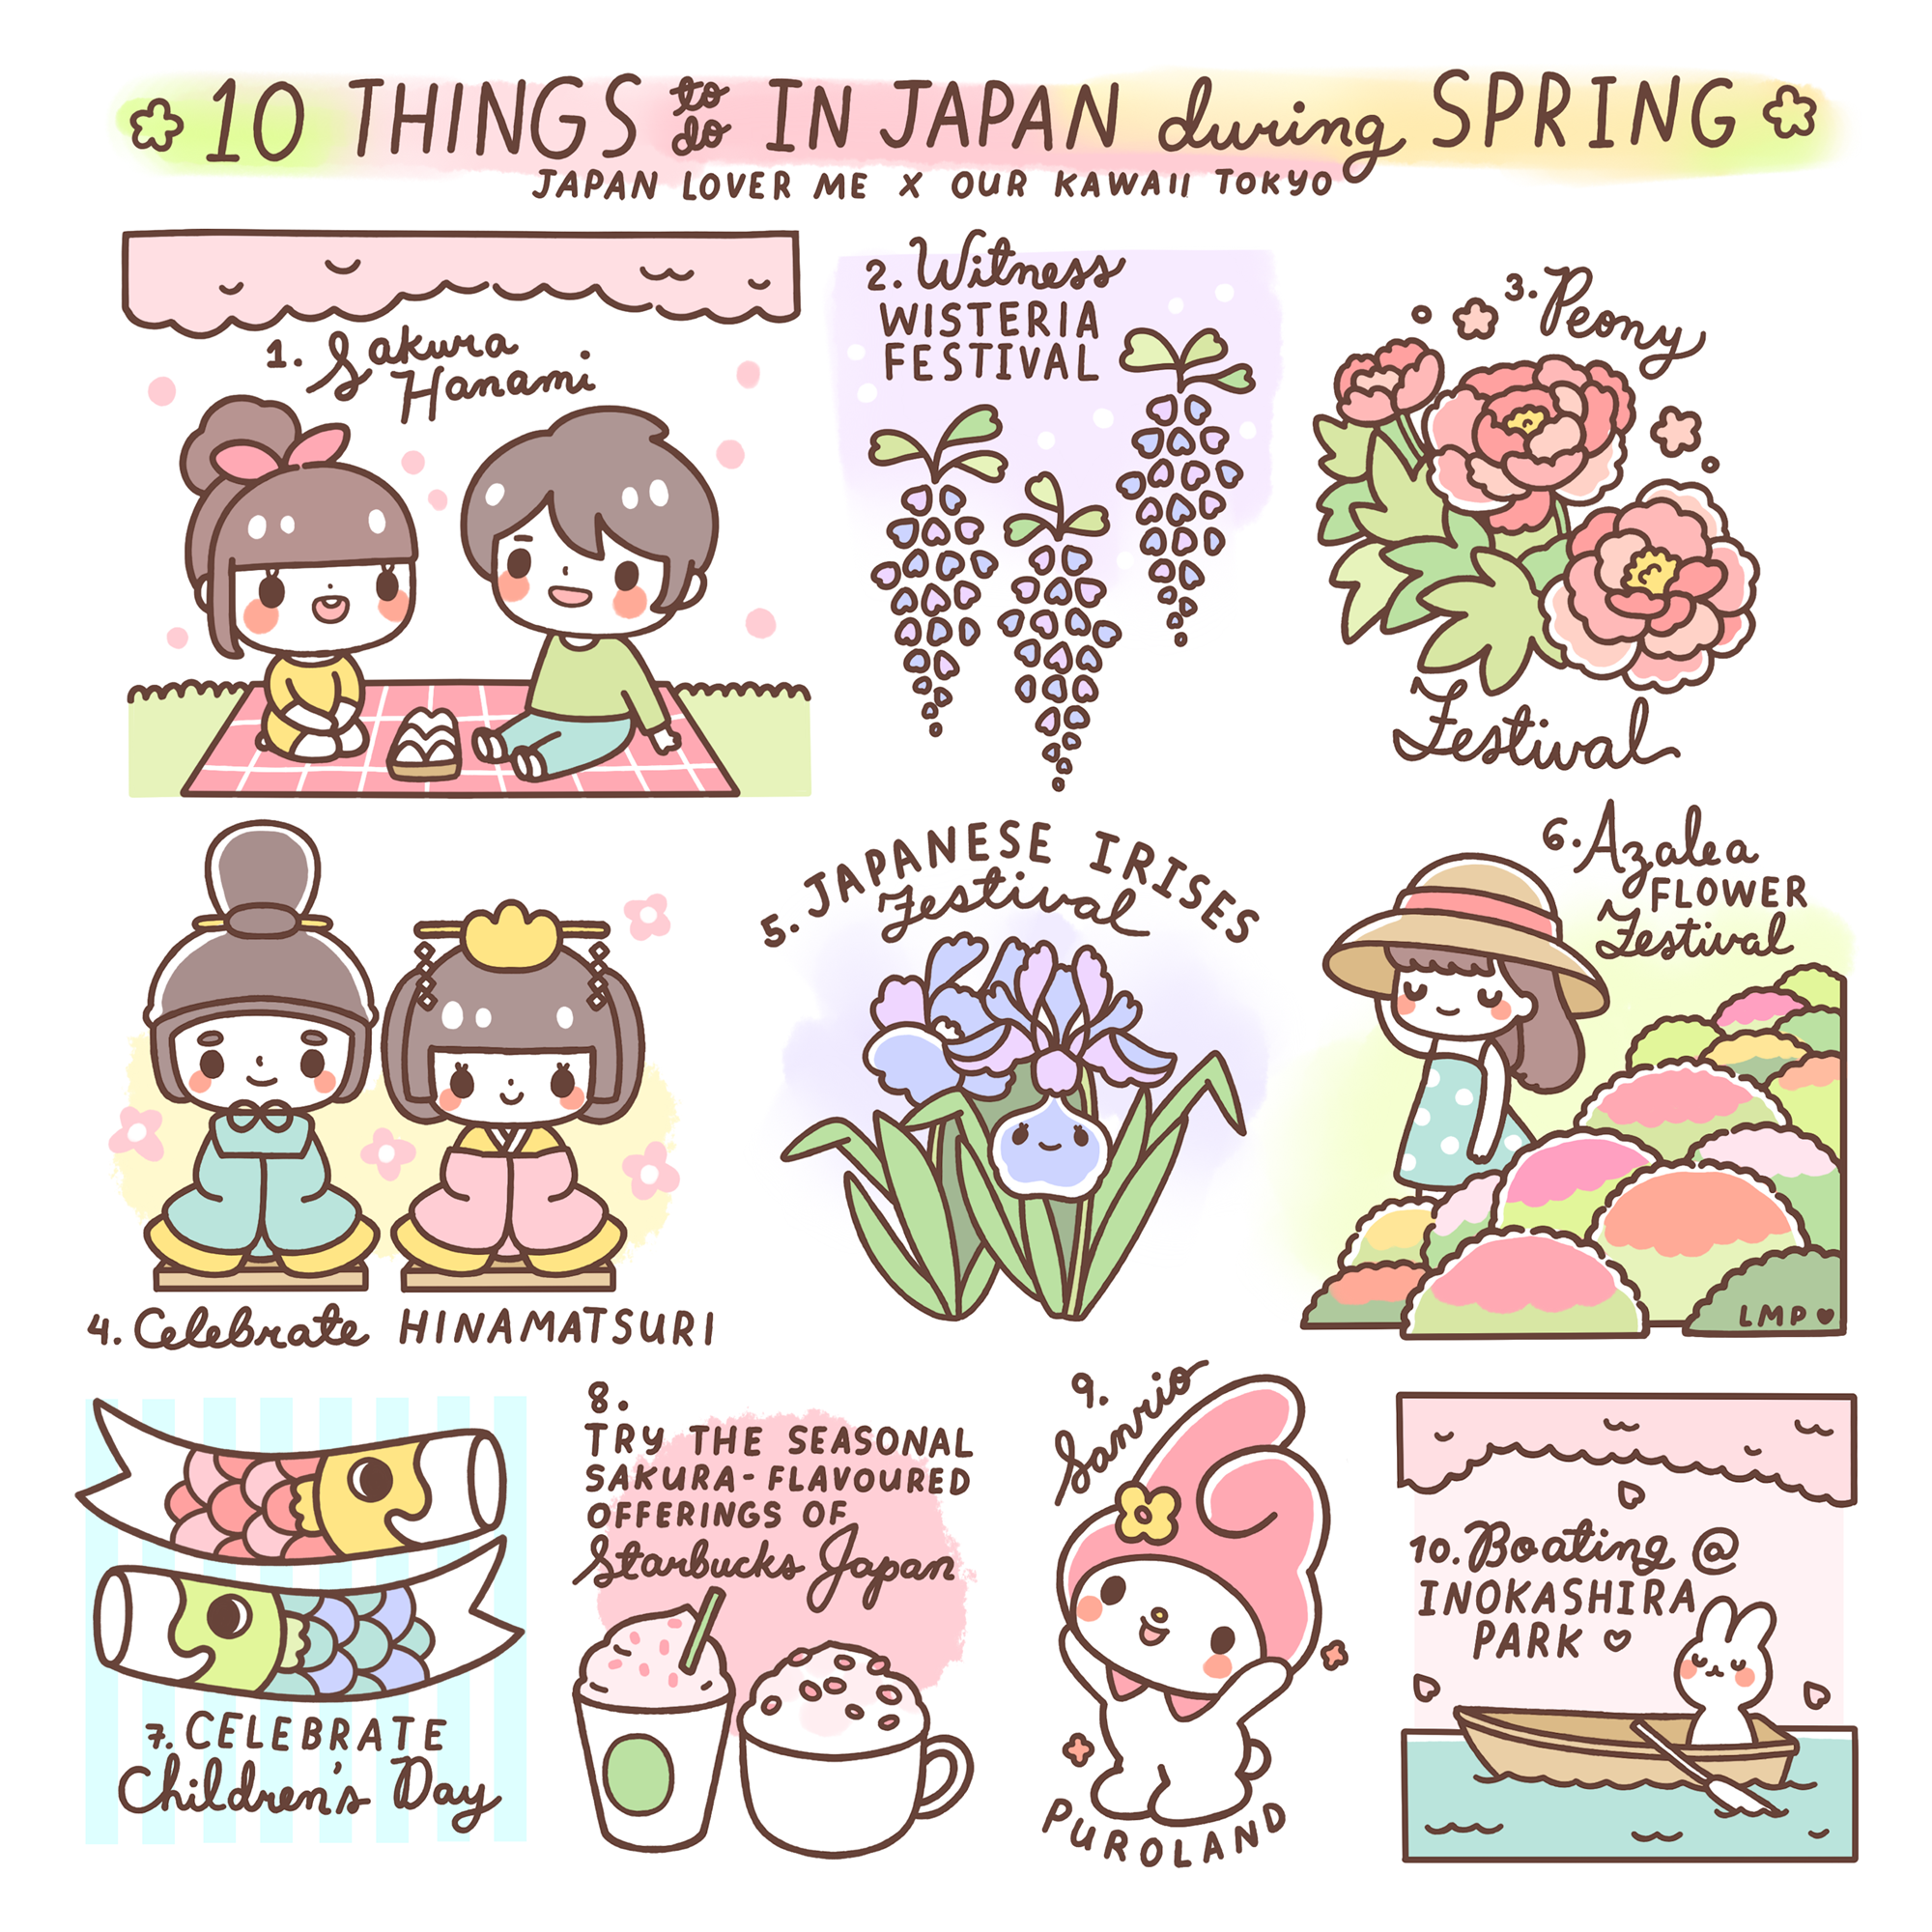 things to do in spring sakura season cherry blossoms our kawaii tokyo japan lover me